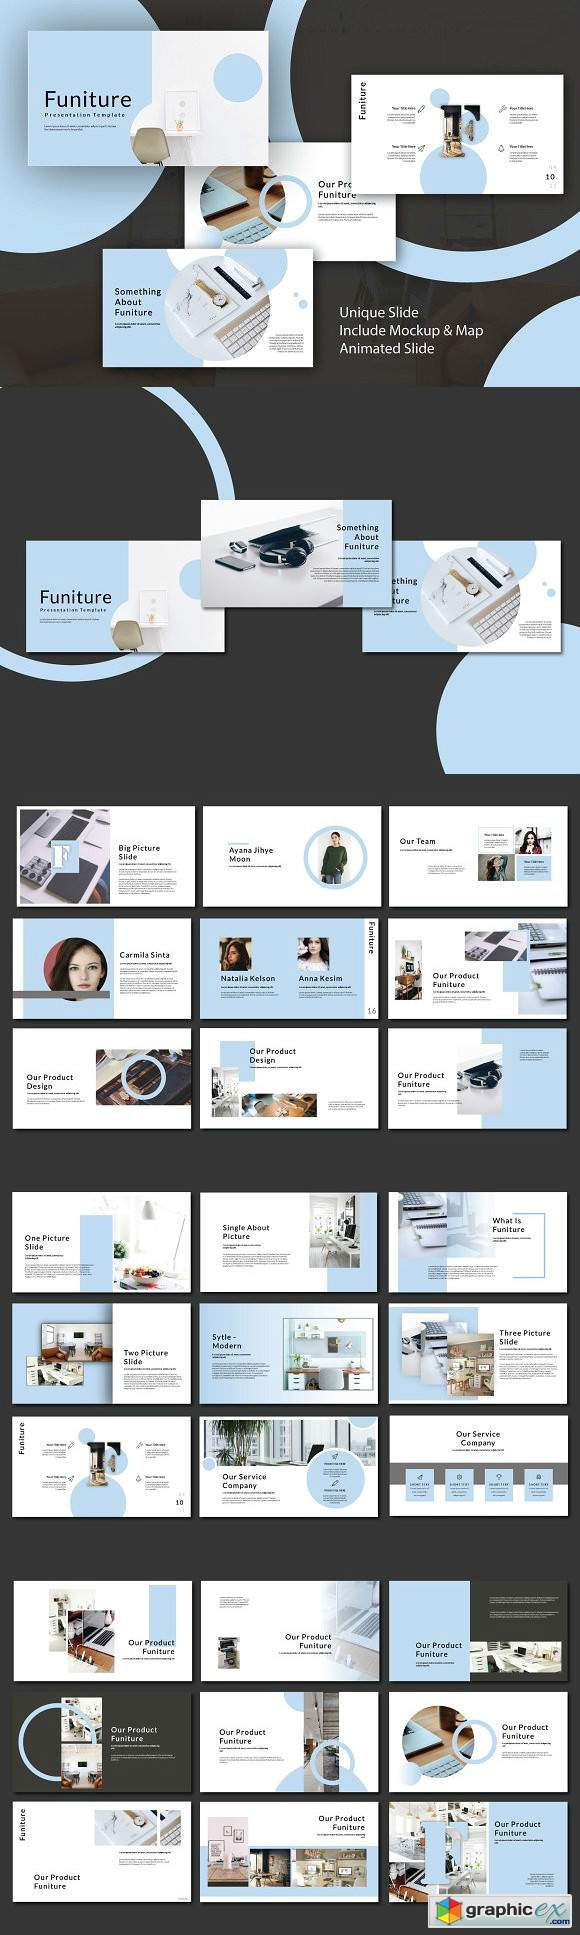 Funiture Powerpoint Template